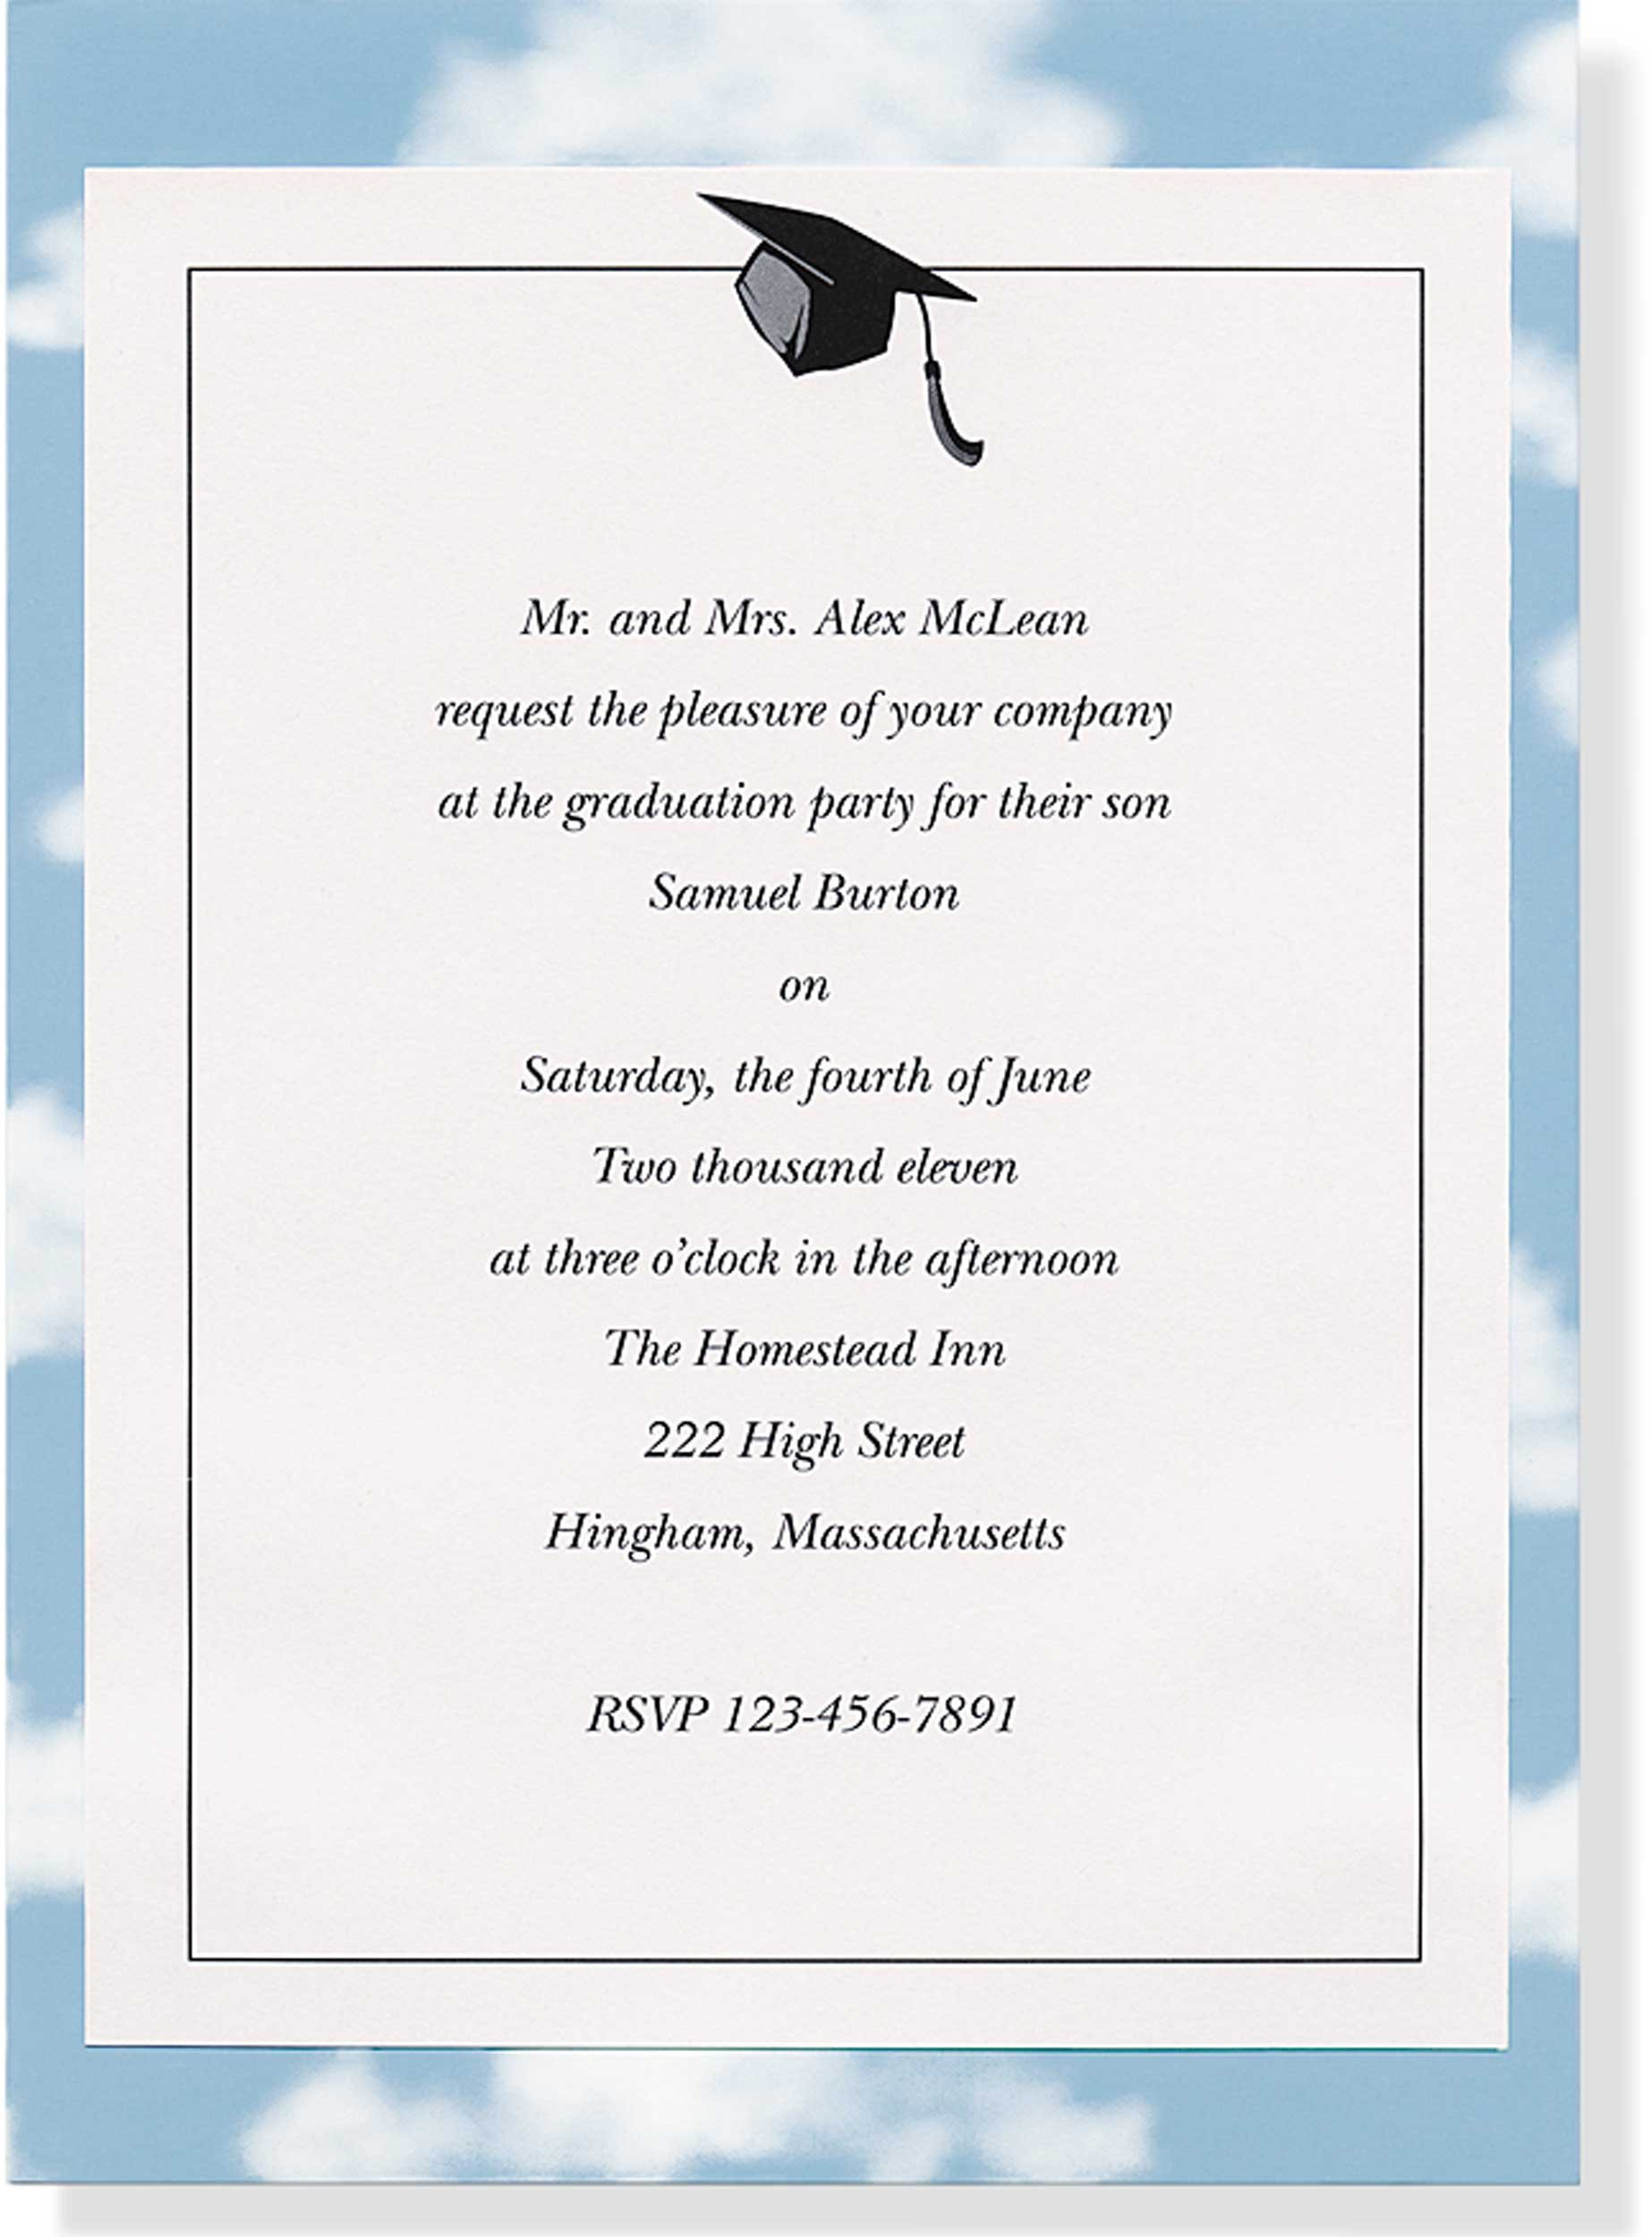 Graduation Invitation Kit Stationery Imprintable Invite Kit – 8th Grade Graduation Invitations